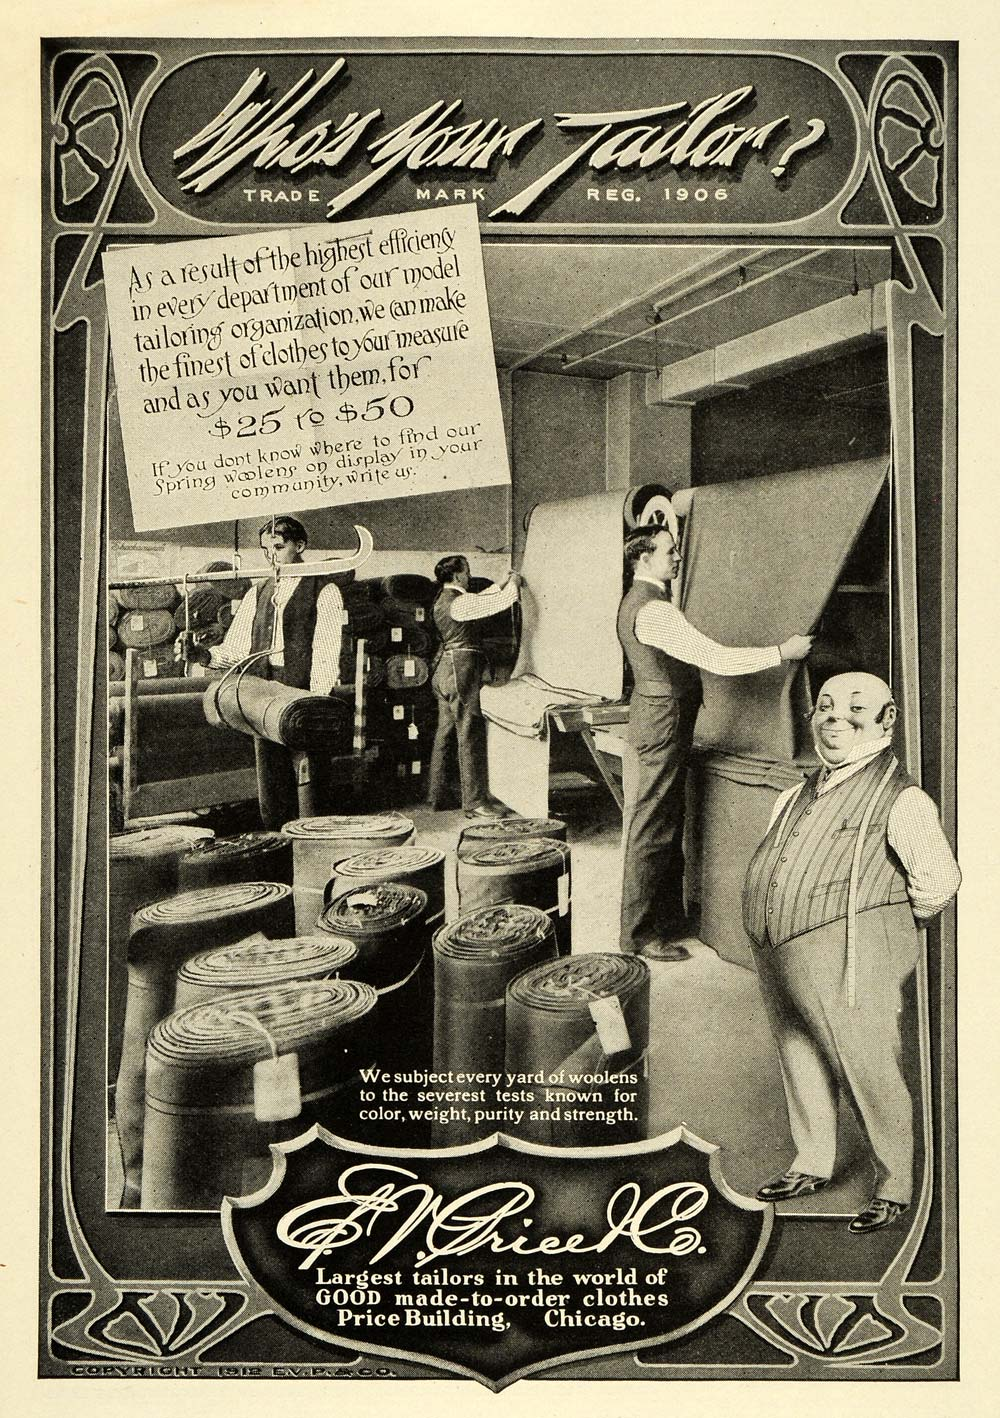 1912 Ad E  V  Price Clothing Tailors Tailoring Chicago Pricing Woolens PM3